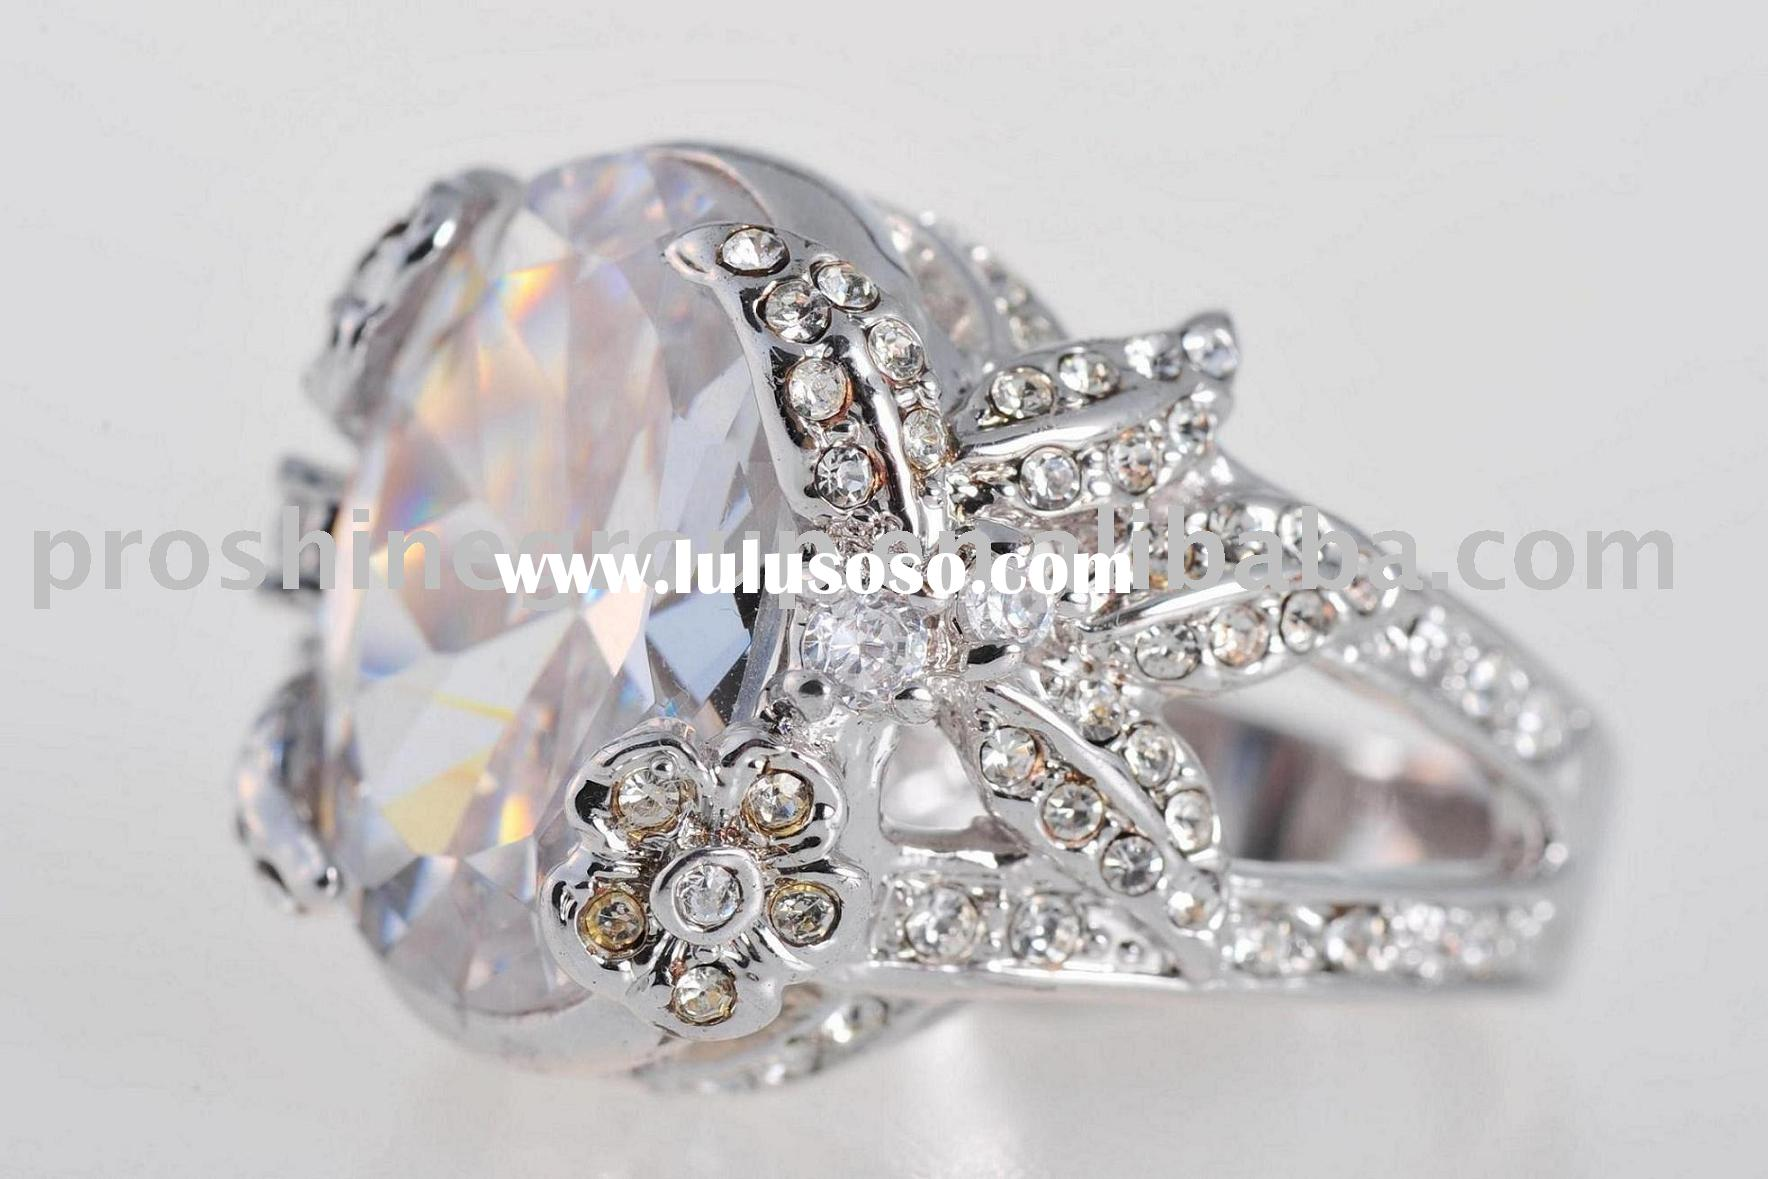 Silver 925 ring / 925 silver CZ ring / 925 silver jewelry / Fashion jewelry / precious Jewelry / fas